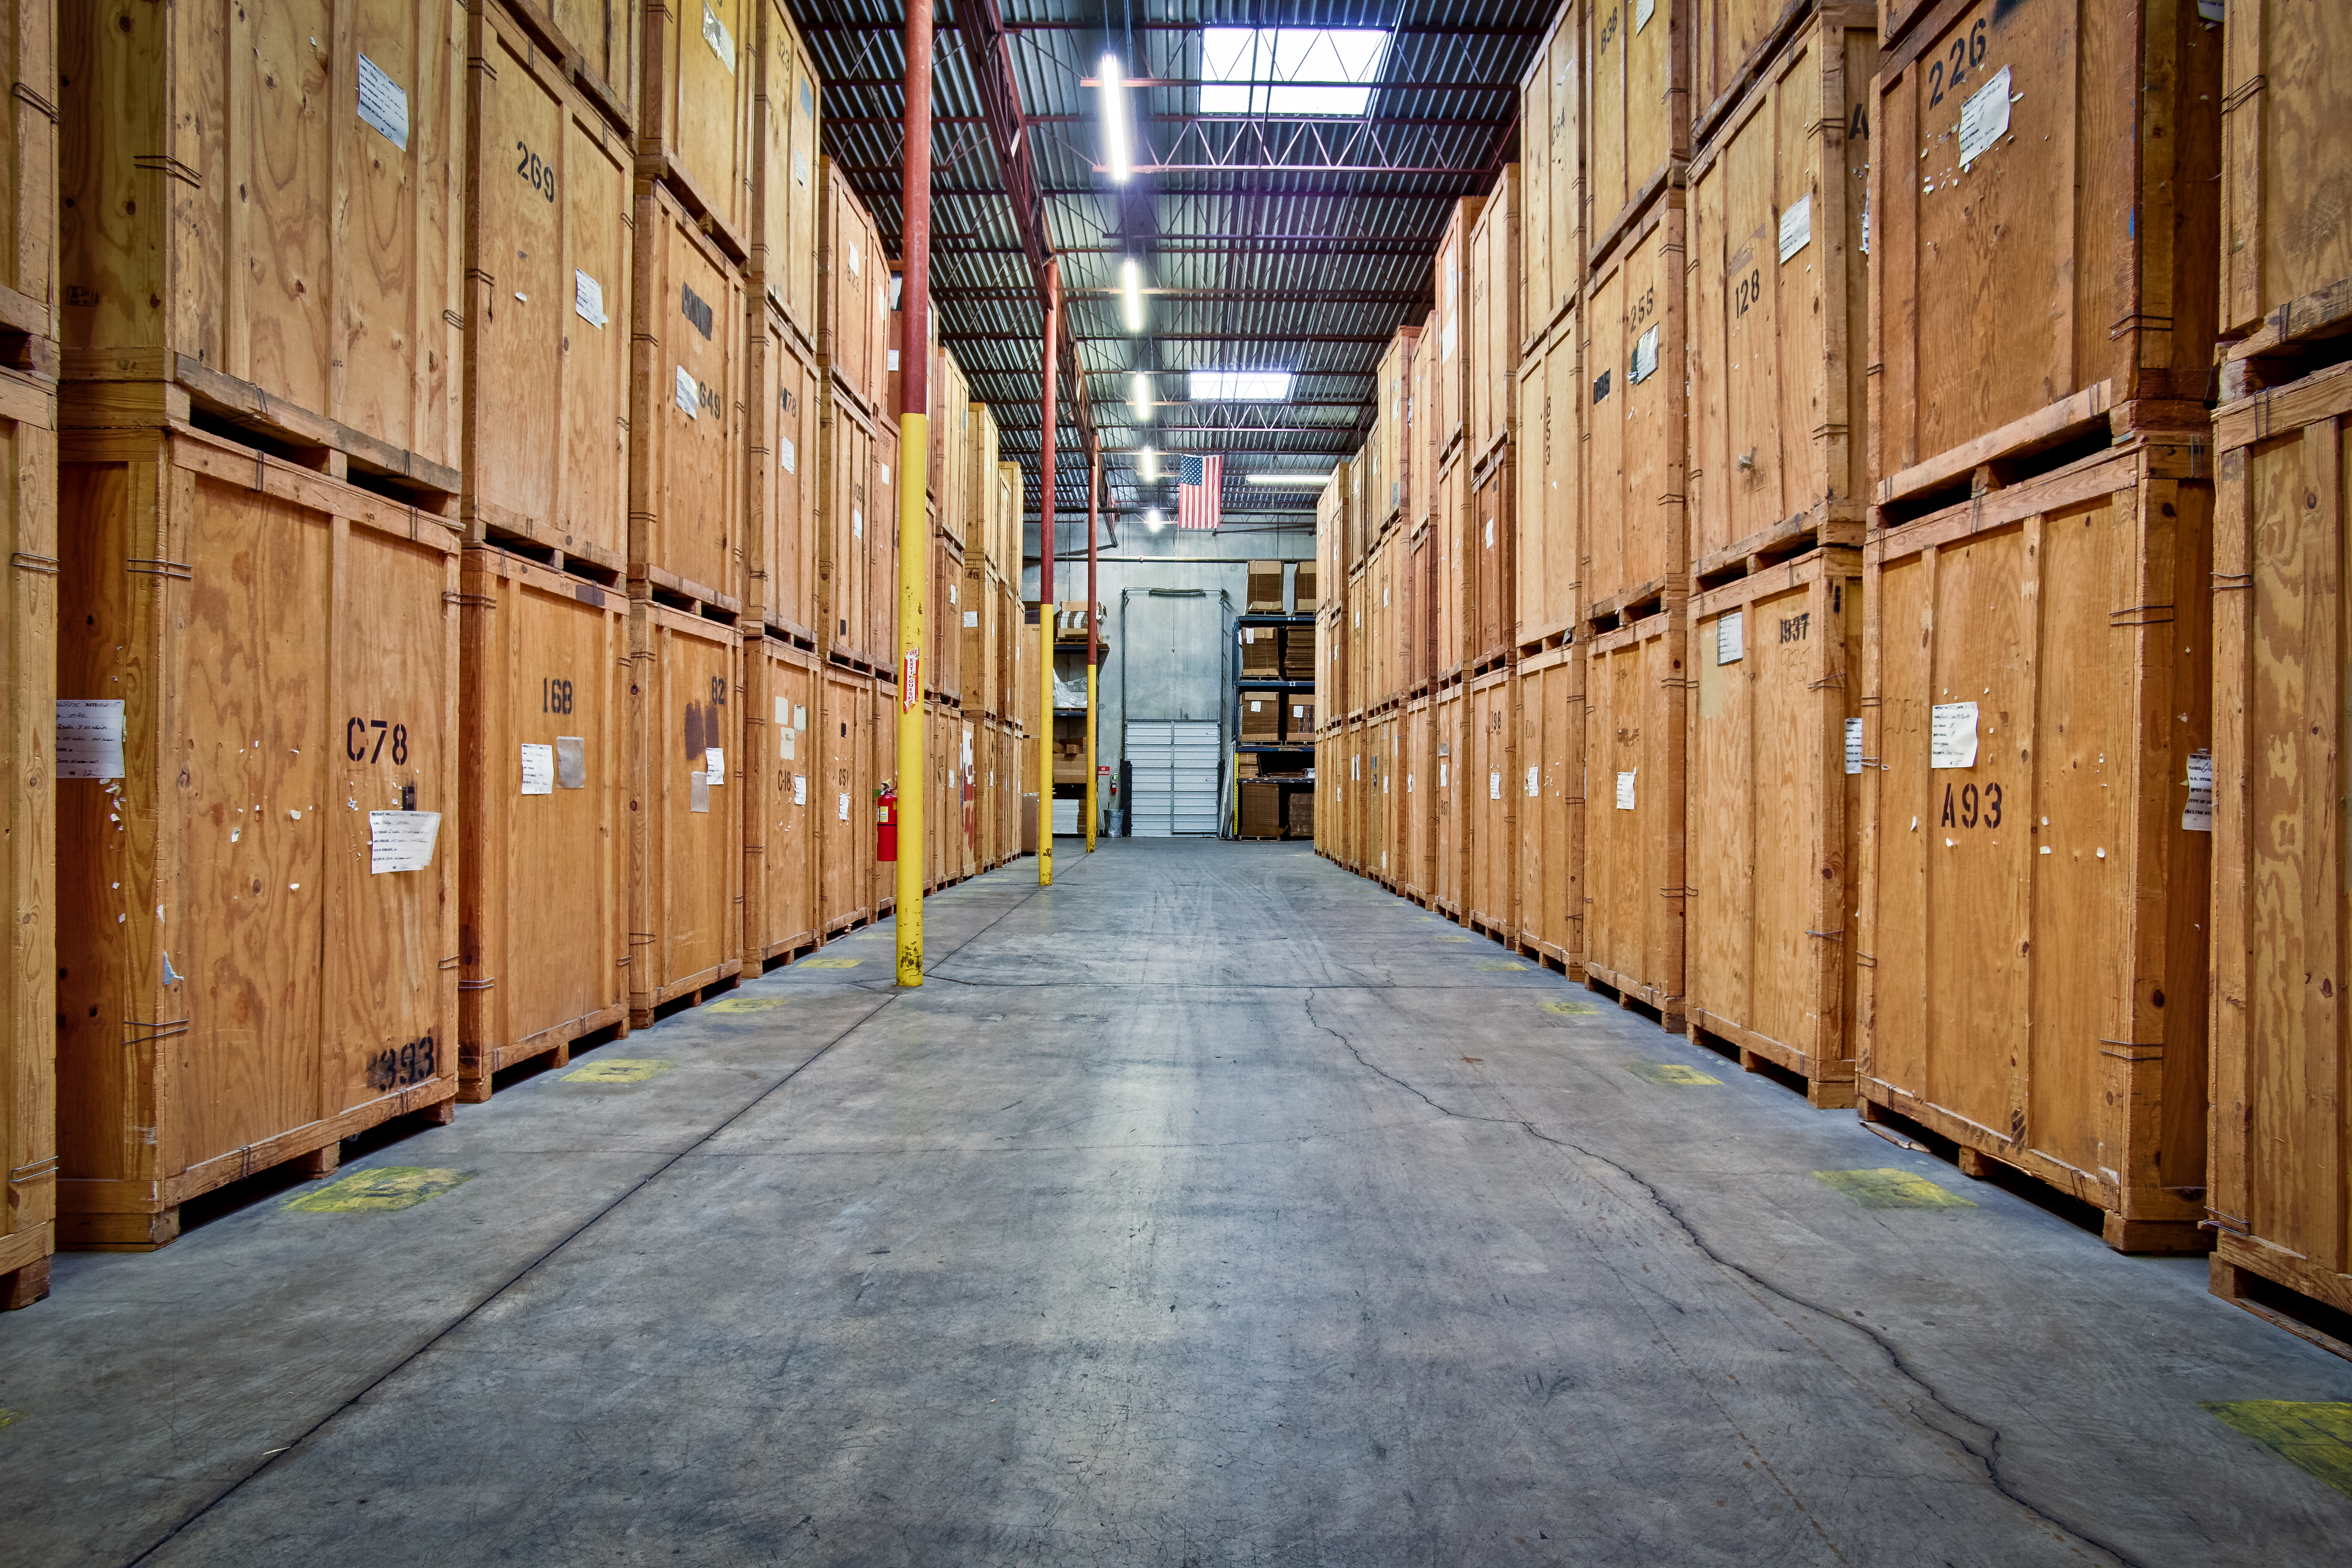 Warehousing & Distribution Services- Warehousing Services - Fulfillment Warehousing